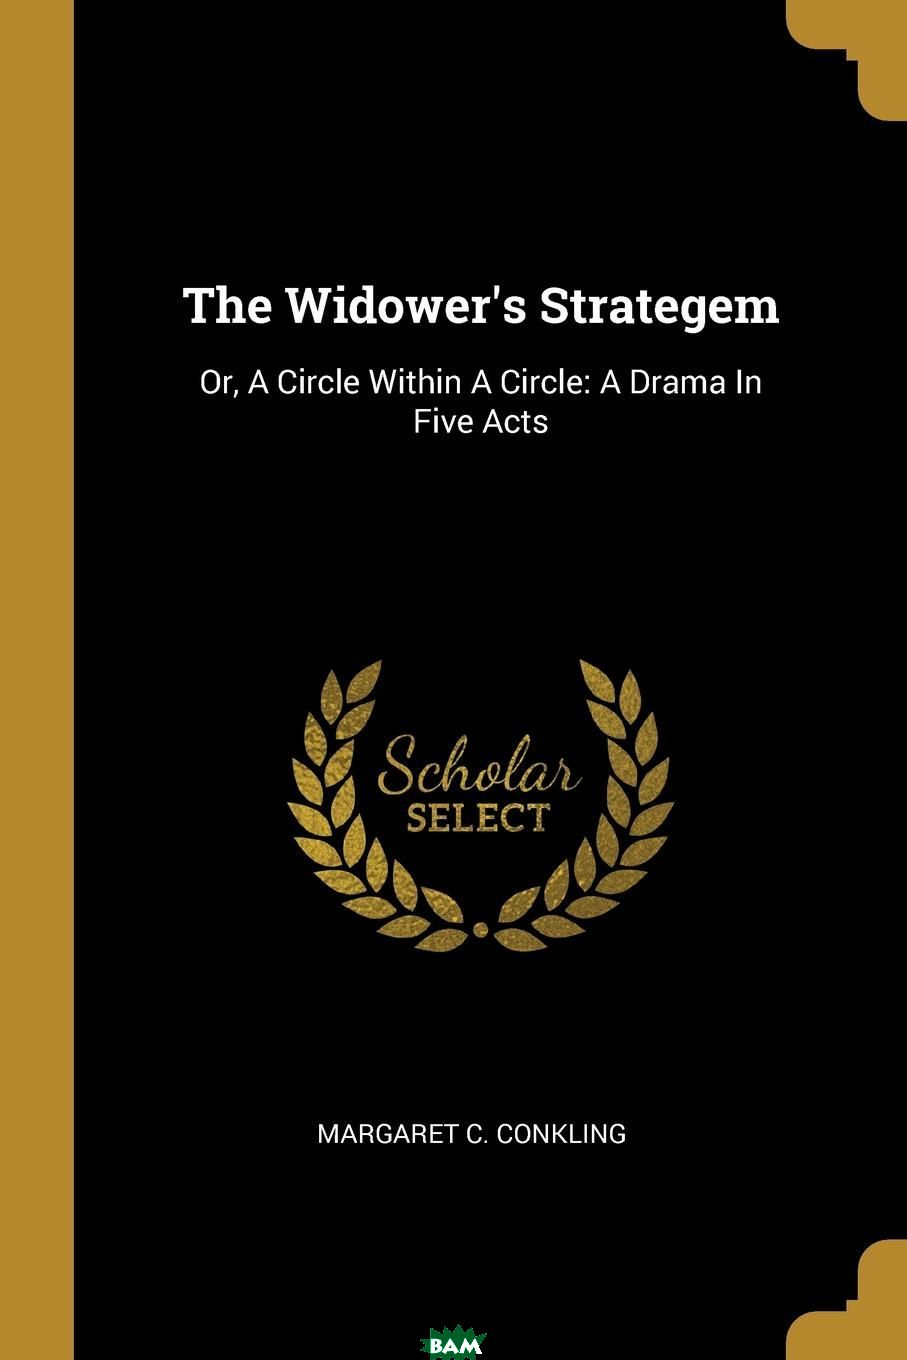 The Widower.s Strategem. Or, A Circle Within A Circle: A Drama In Five Acts, Margaret C. Conkling, 9781011291908  - купить со скидкой